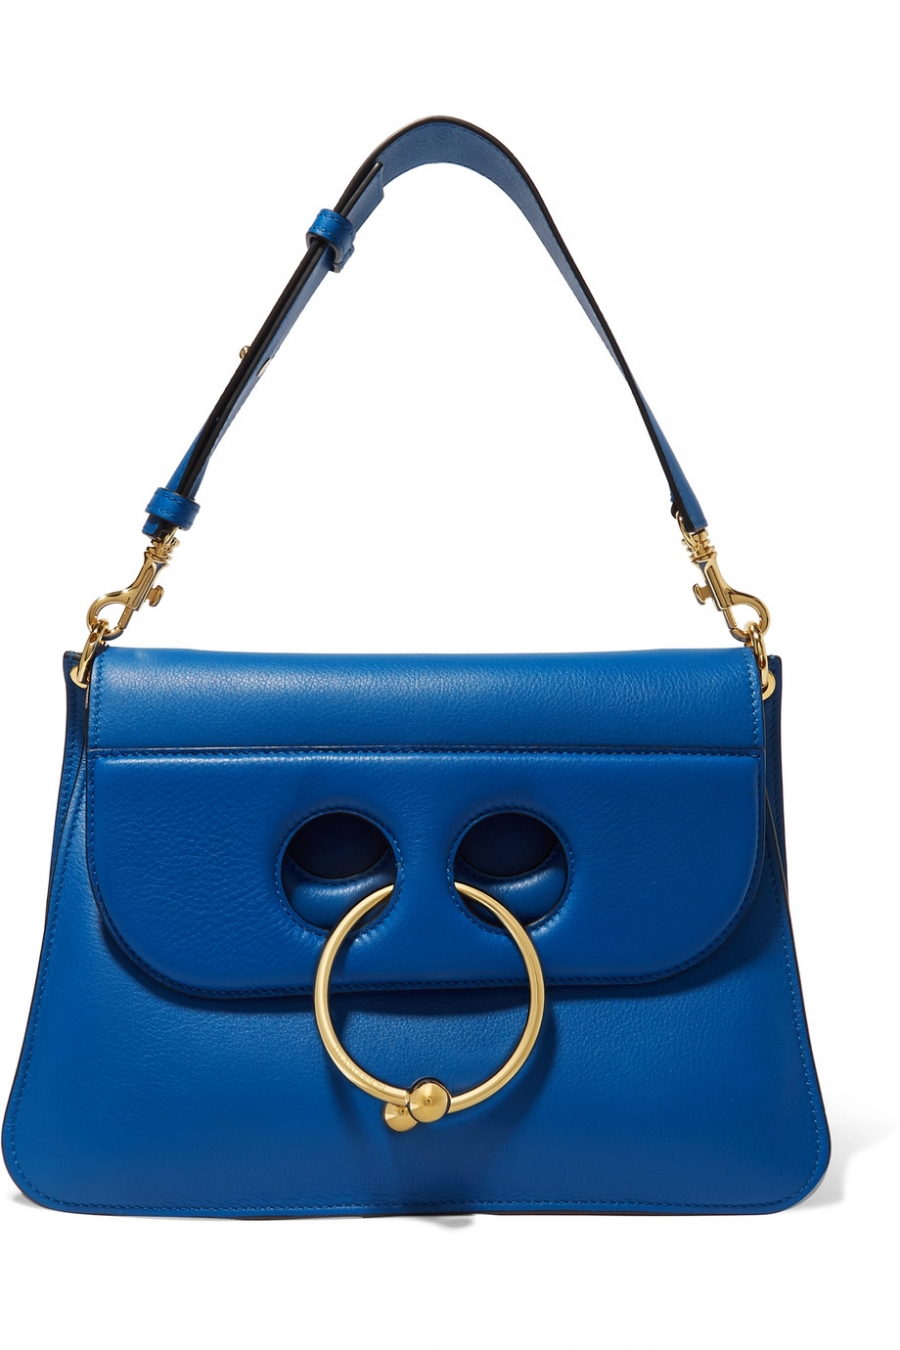 Blue Crush | Fall's Next Big It-Bag